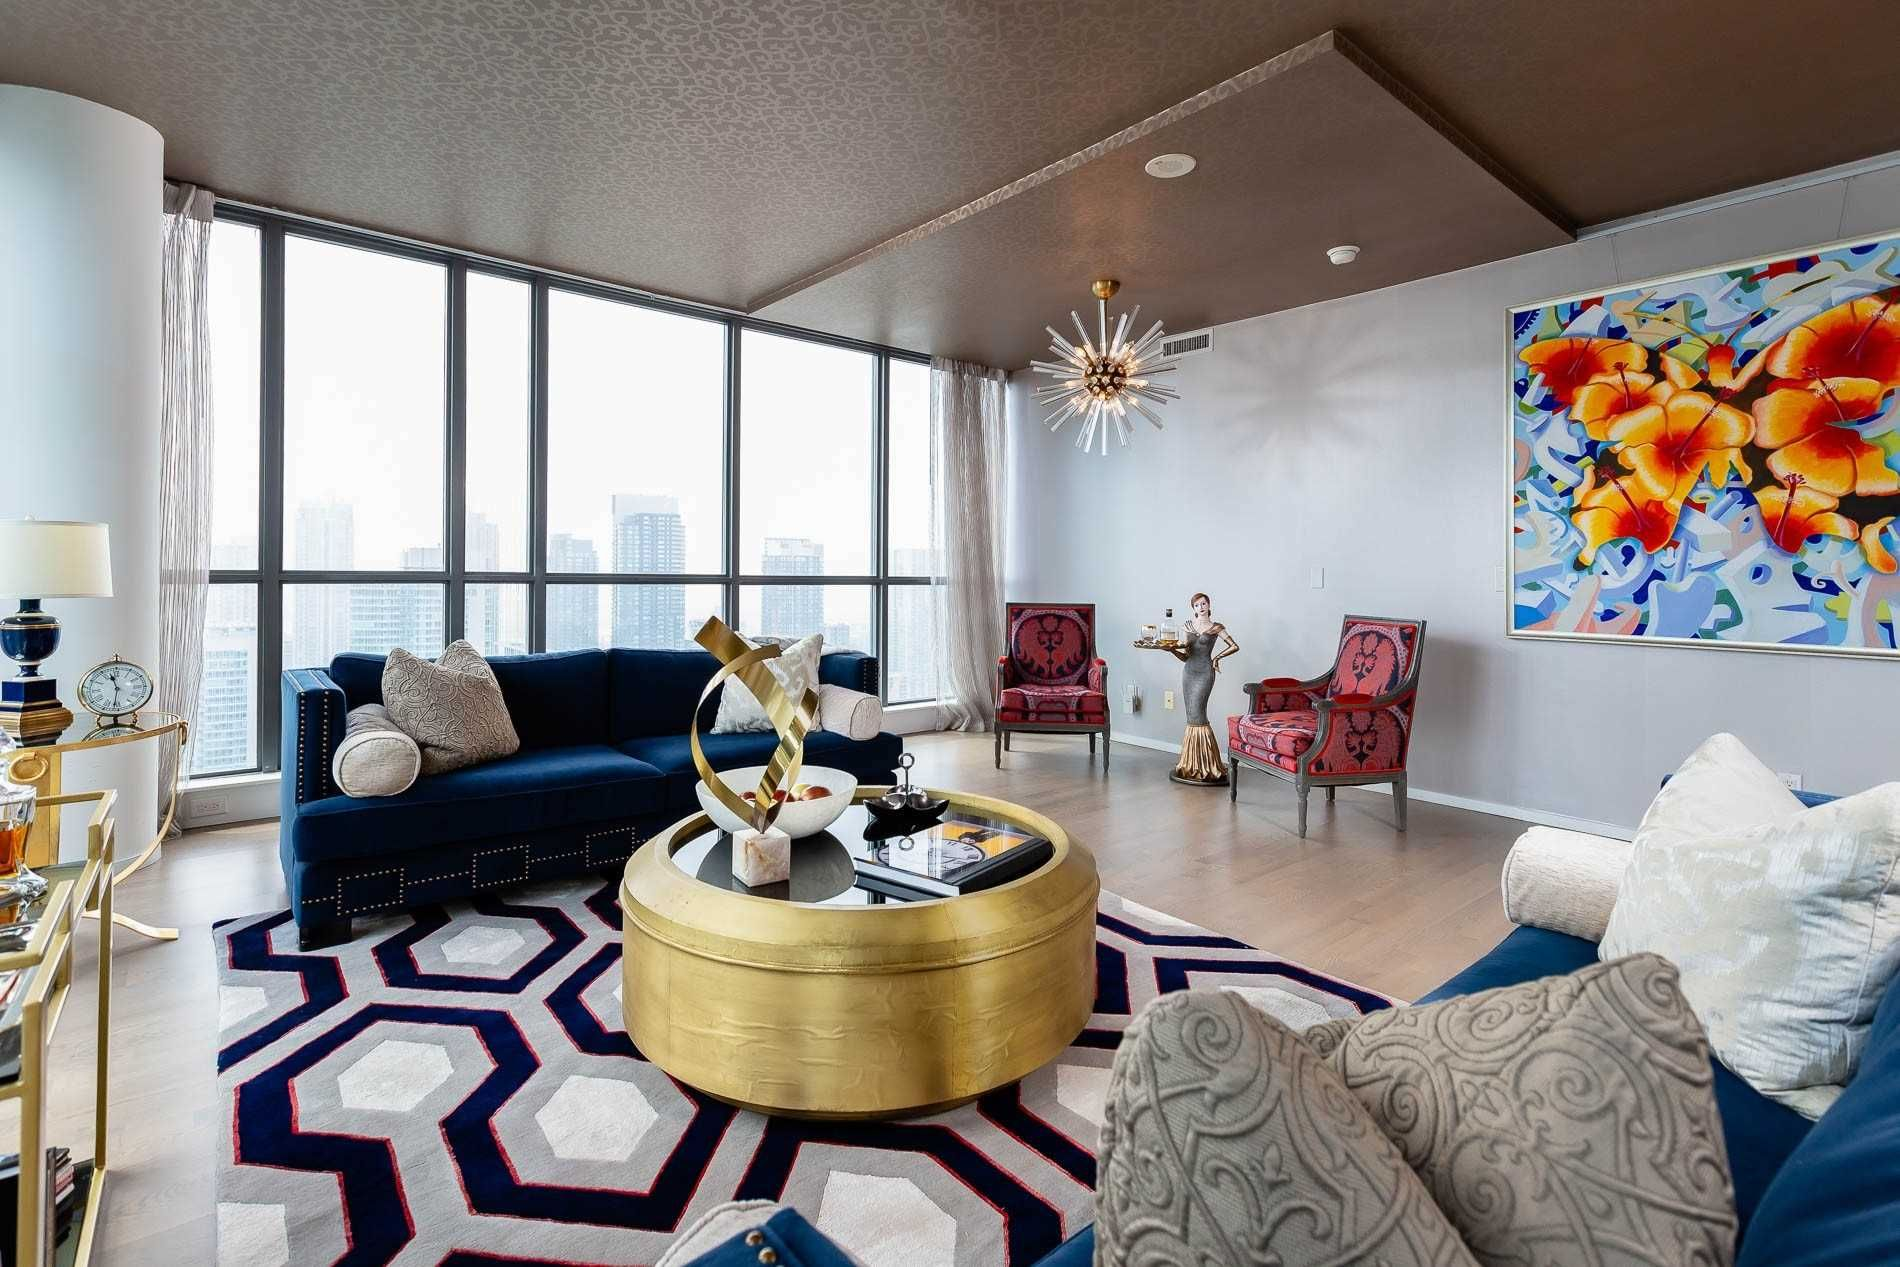 8 Charlotte St, unit 3205 for sale in King West - image #1